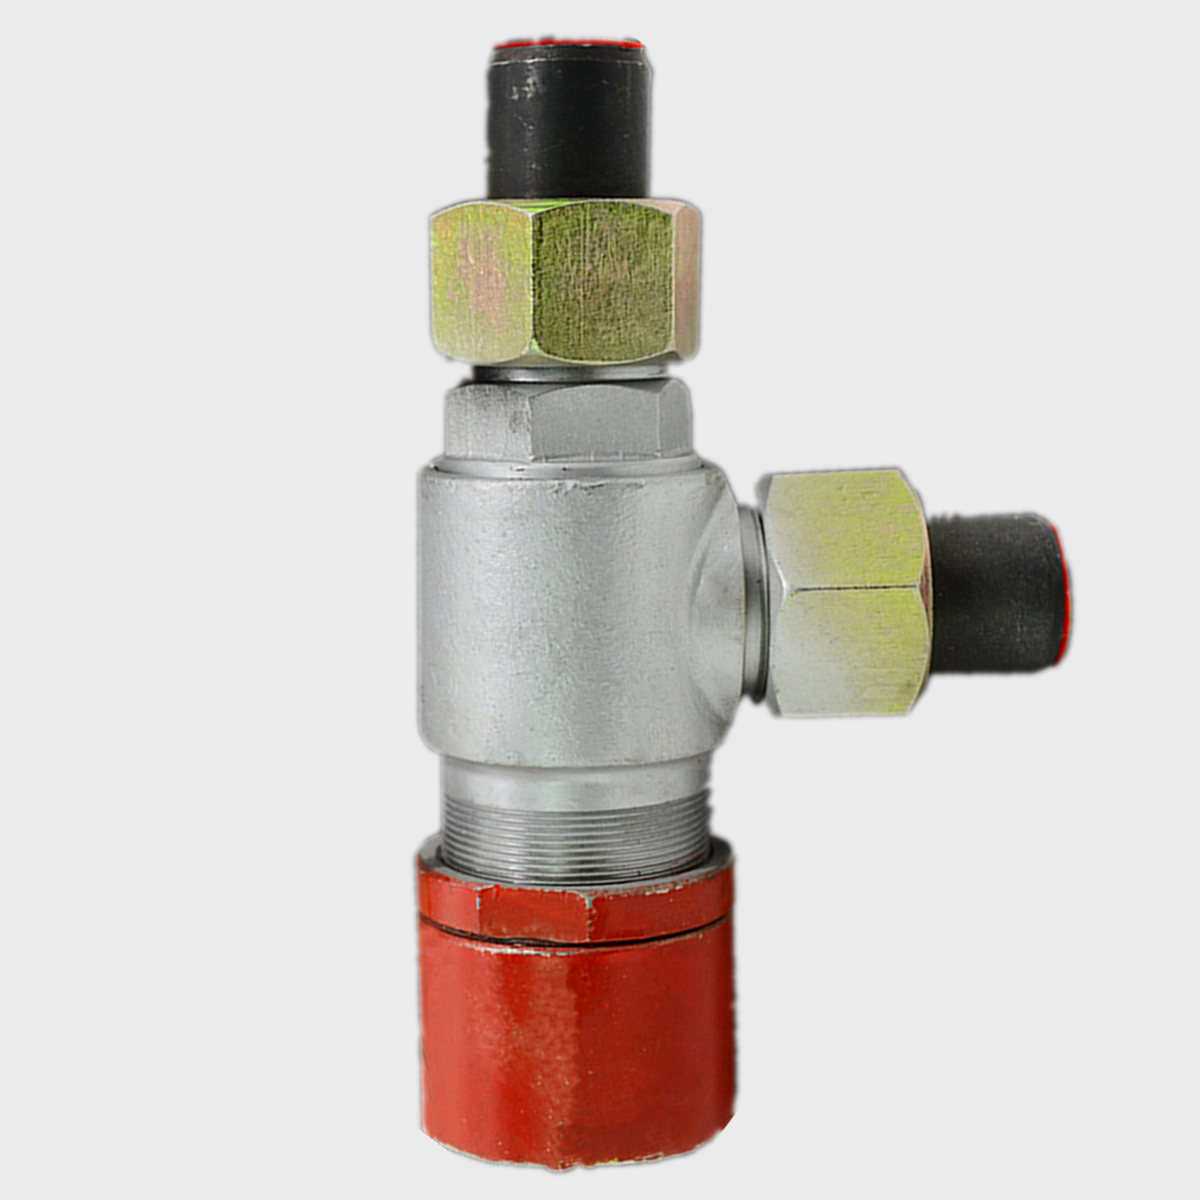 Micro-opening safety valve for refrigeration Manufacturers, Micro-opening safety valve for refrigeration Factory, Supply Micro-opening safety valve for refrigeration